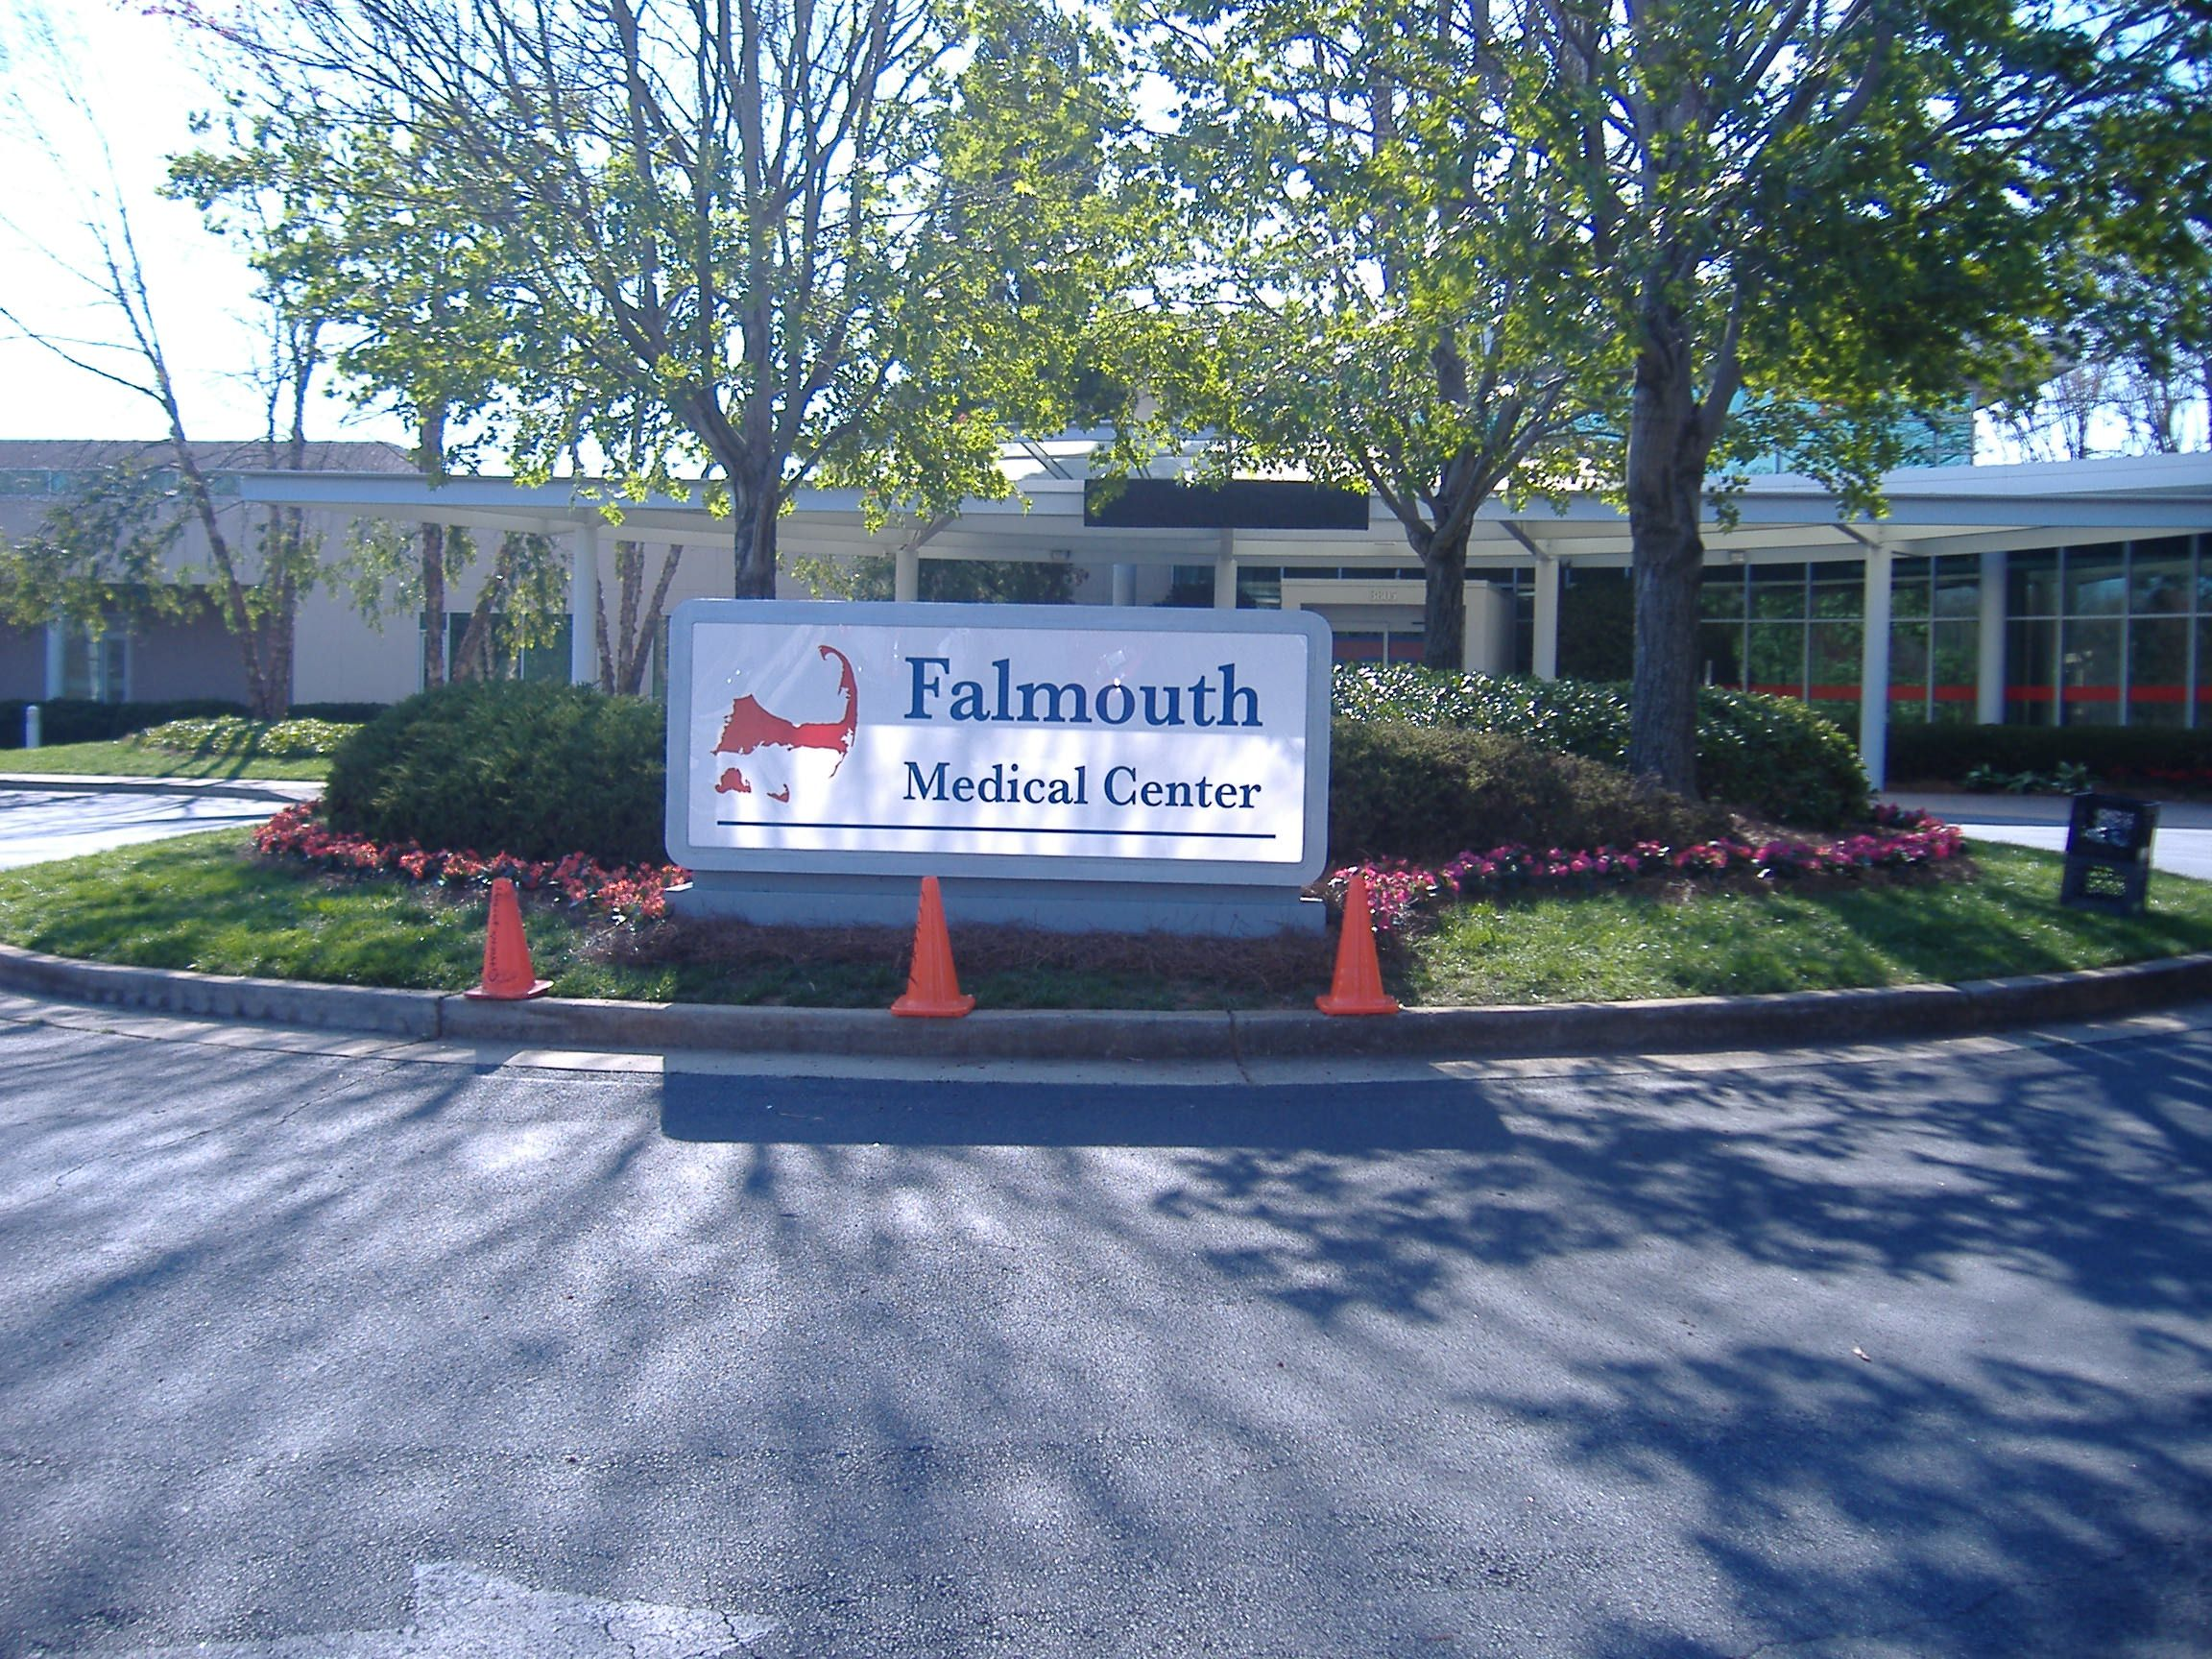 The Marquee May Say Falmouth Medical Center But It Sure Looks A